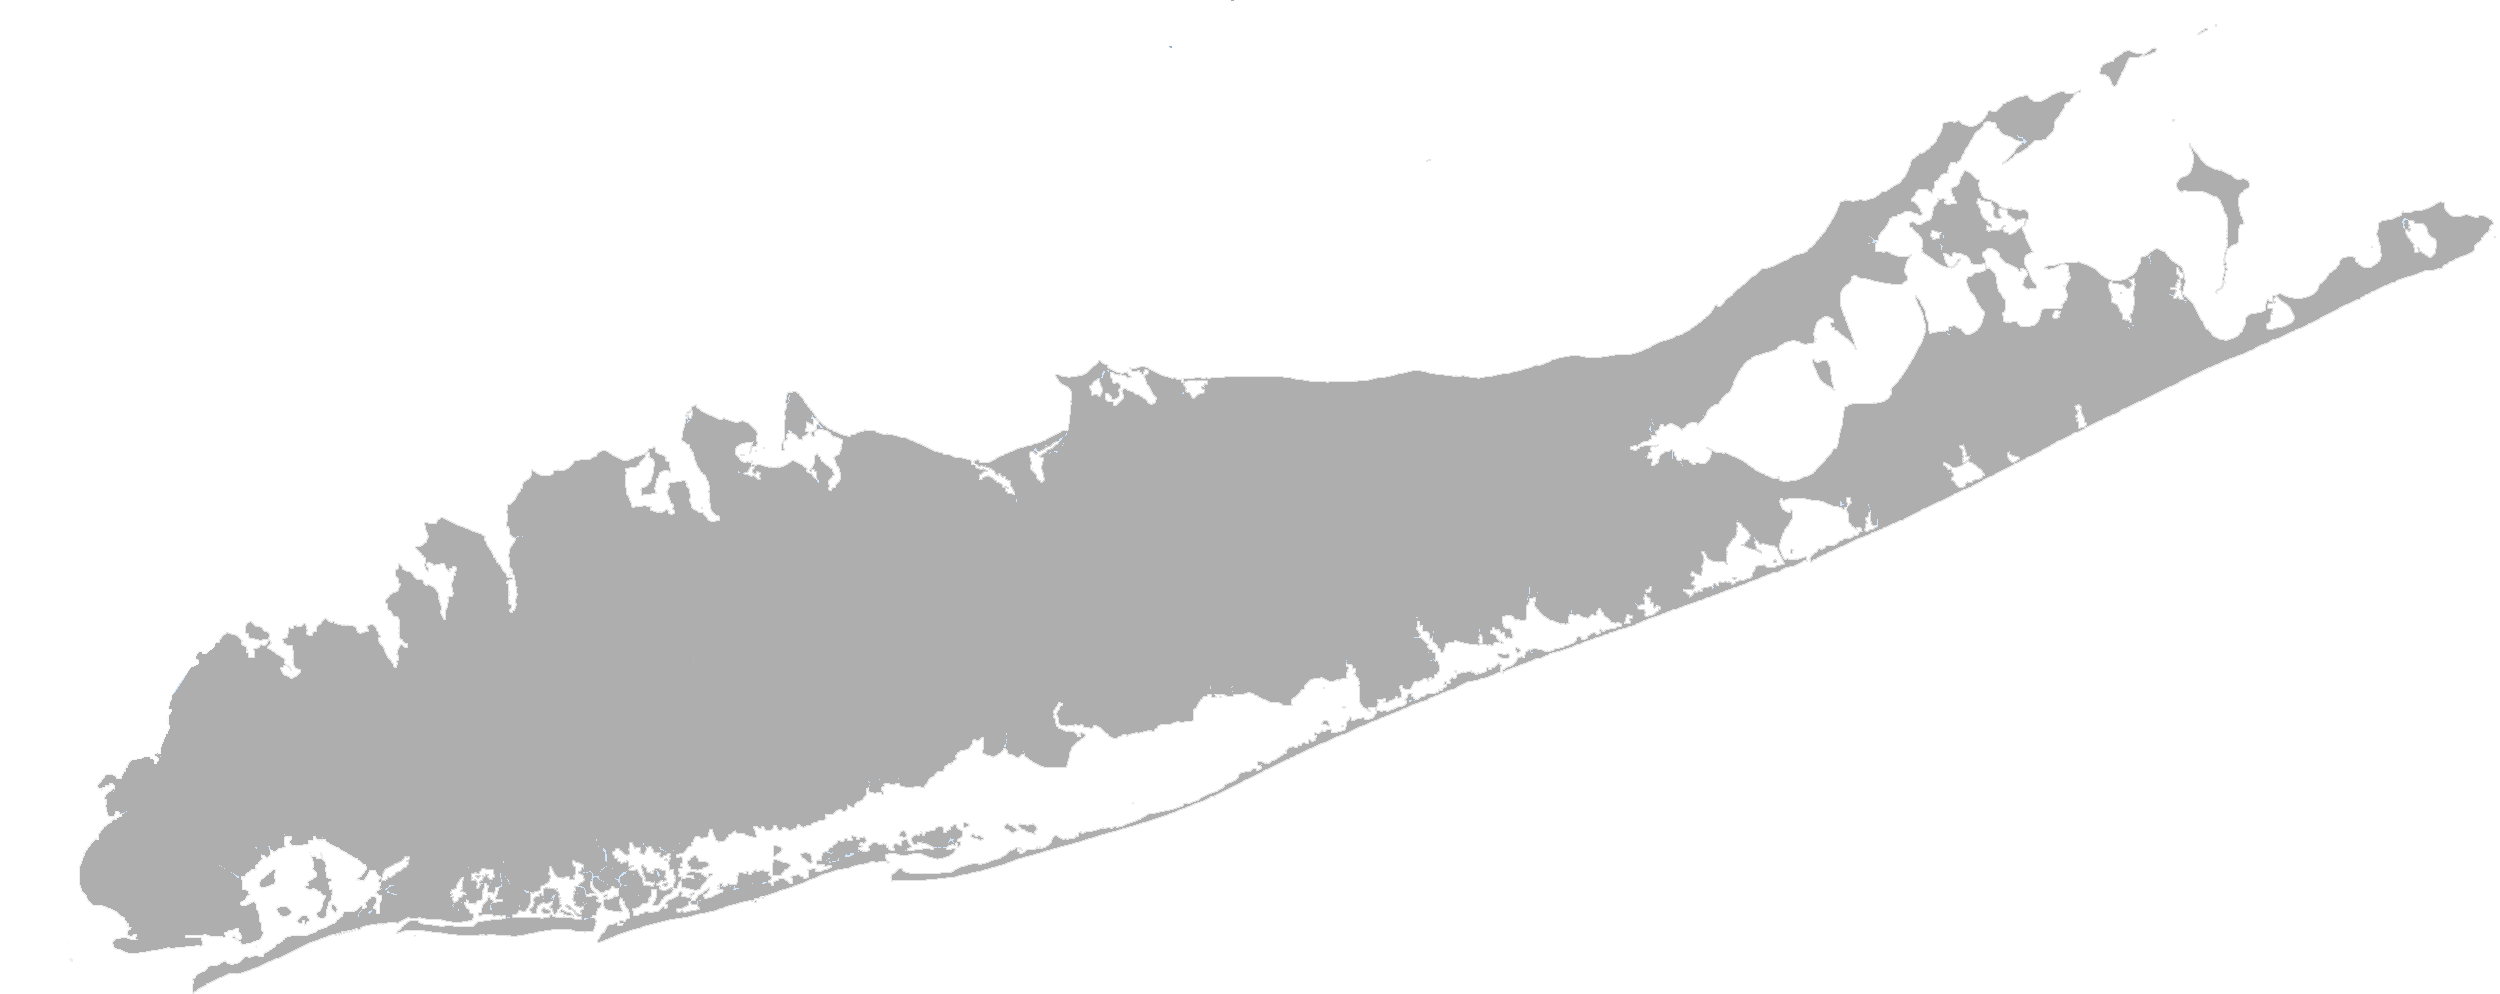 Long Island, New York, Nassau County, Suffolk County